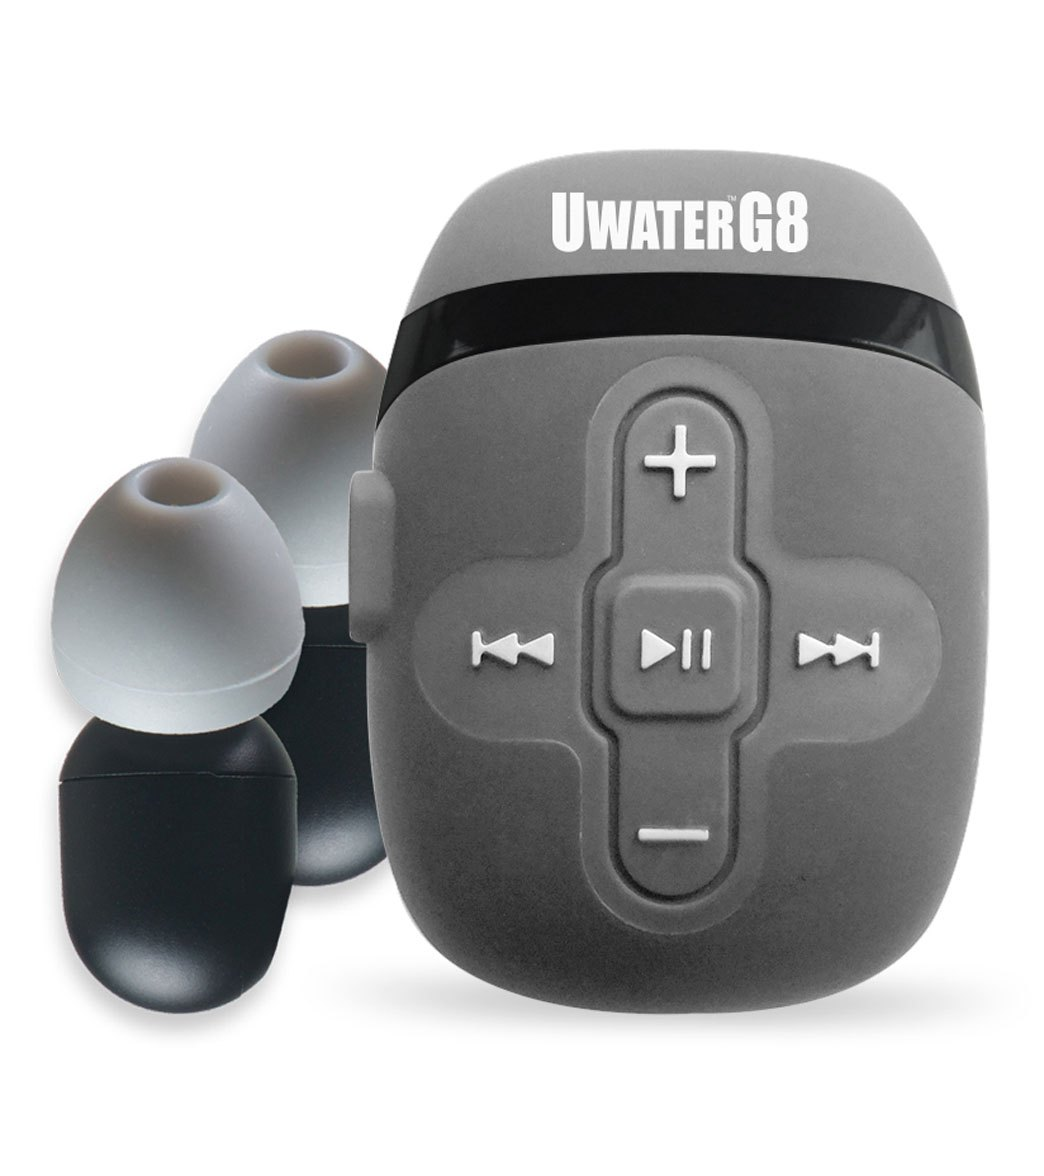 fitness technologies uwaterg8 8gb waterproof swim mp3 player black at free shipping. Black Bedroom Furniture Sets. Home Design Ideas